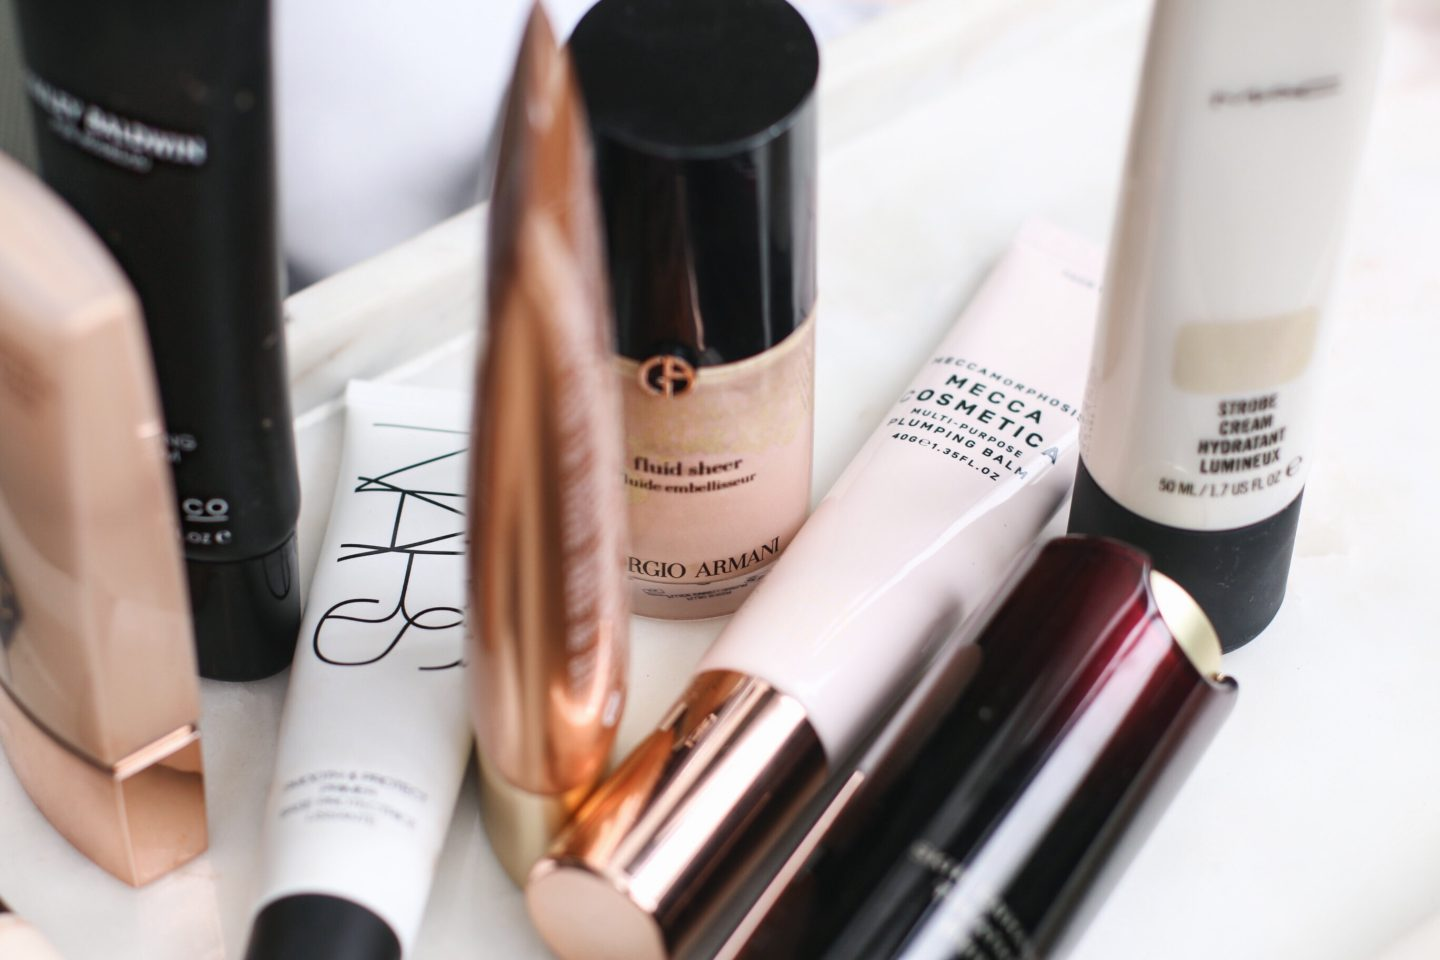 The Edit: Primers To Make Everything Else Look Better